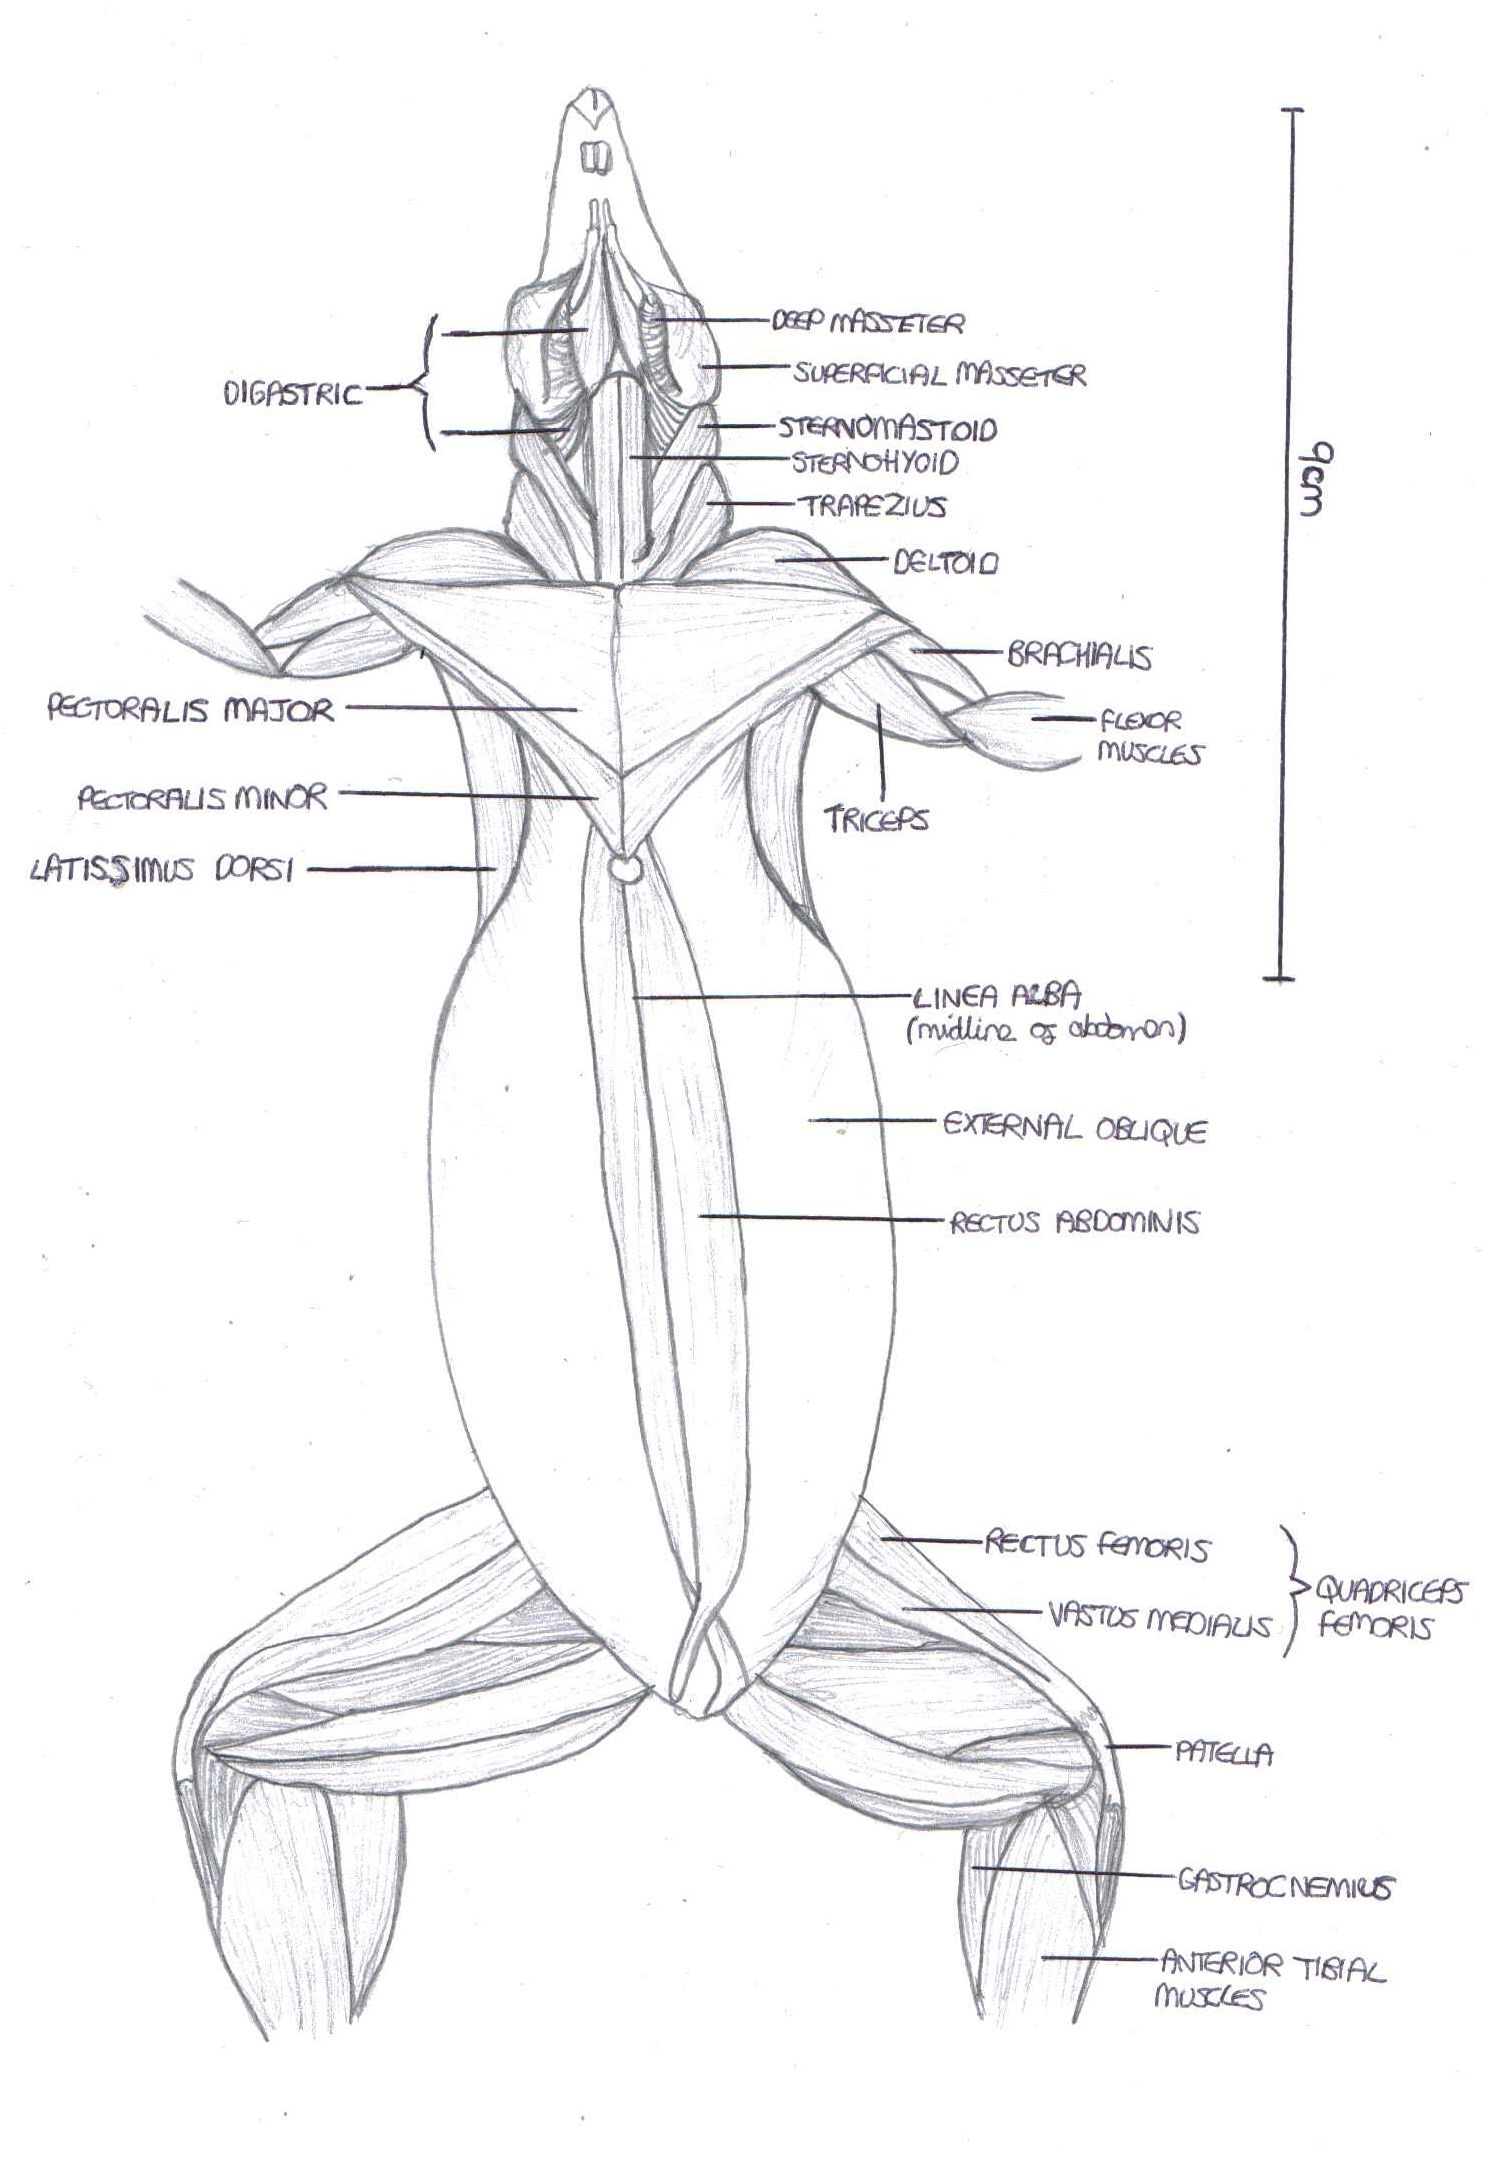 Anatomy of rat musculature, ventral view. | Zoology, Rats ...